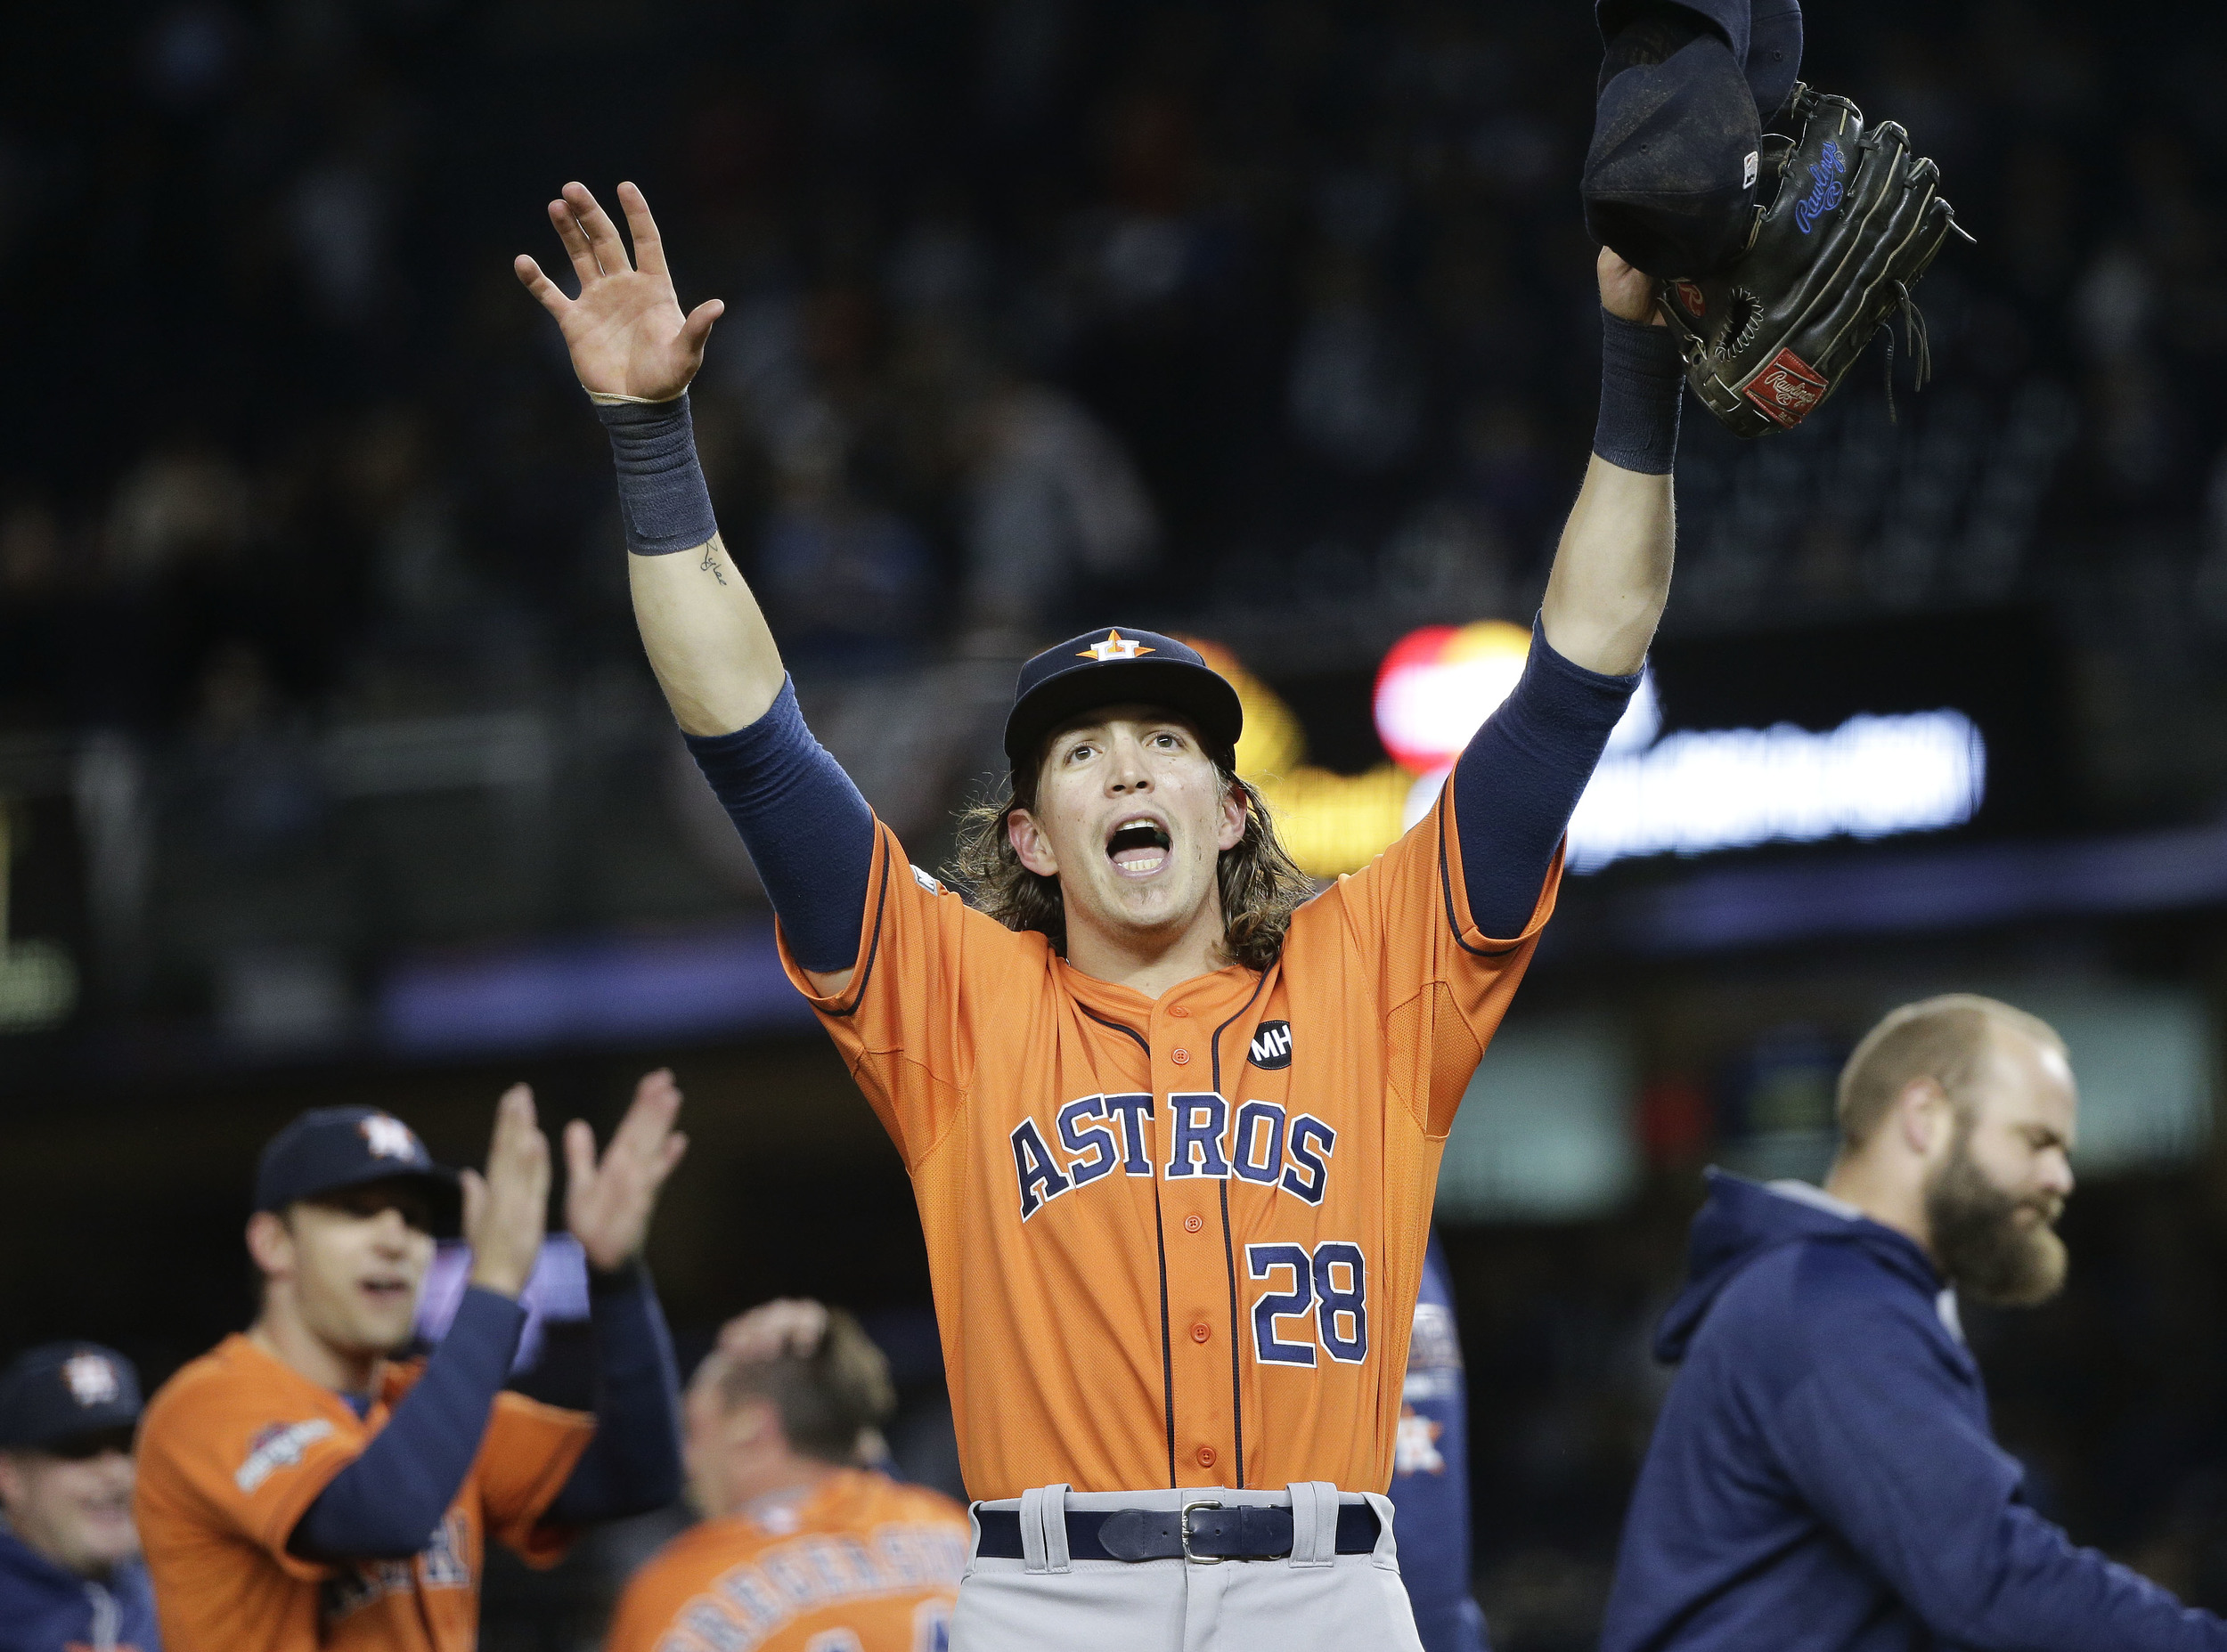 Houston Astros left fielder Colby Rasmus (28) motions to fans after the Astros defeated the New York Yankees 3-0 in the American League wild card baseball game, Tuesday, Oct. 6, 2015, in New York. (Julie Jacobson/AP)